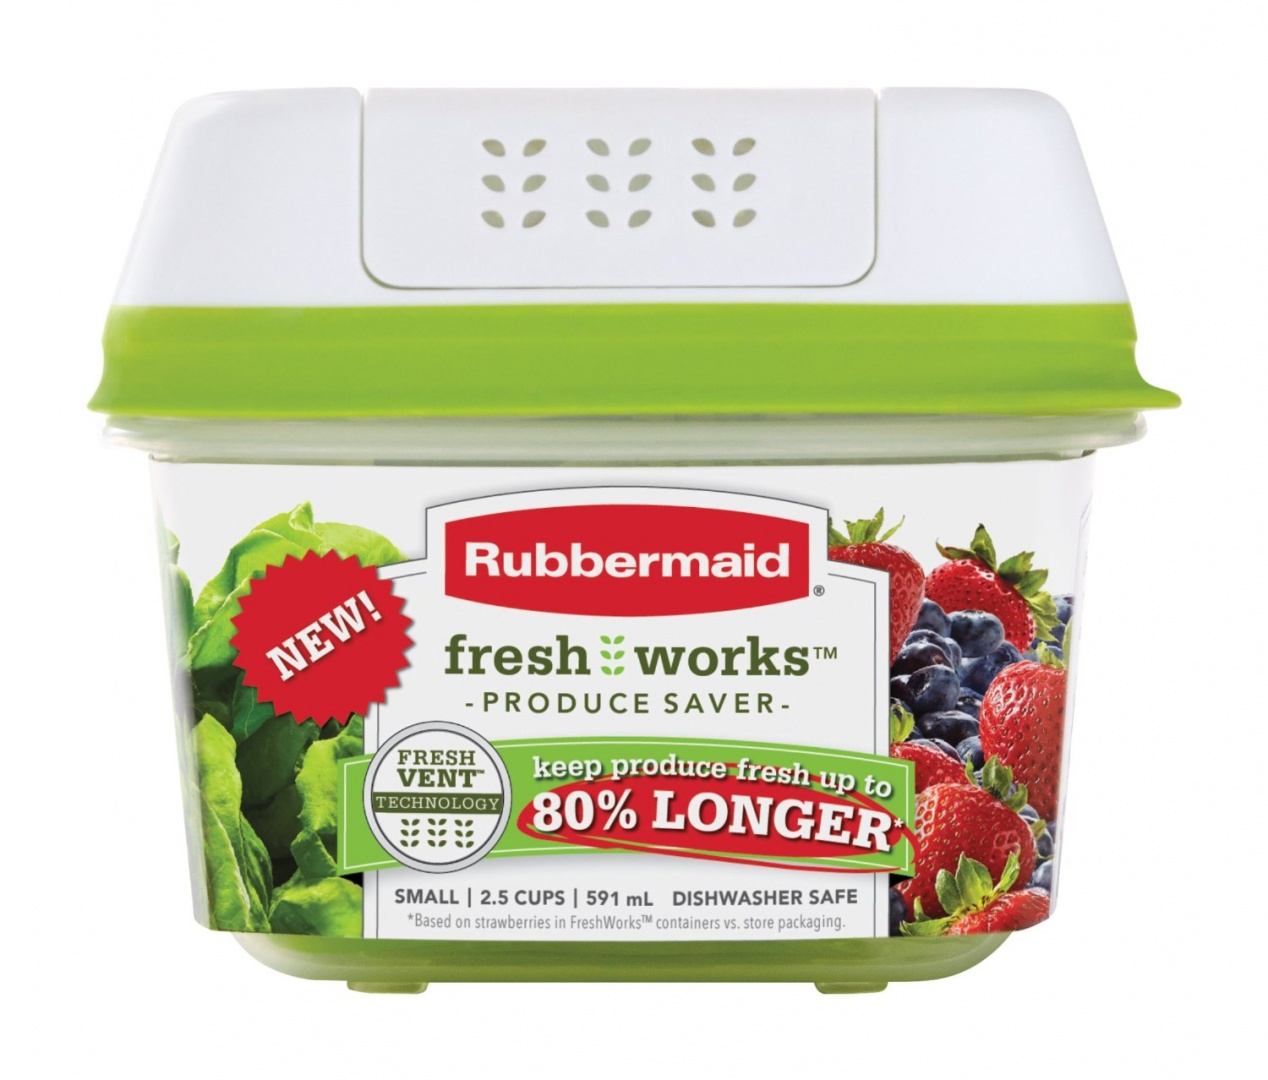 Vegetable Saver Containers Rubbermaid produce saver kitchen buy online from fishpond workwithnaturefo